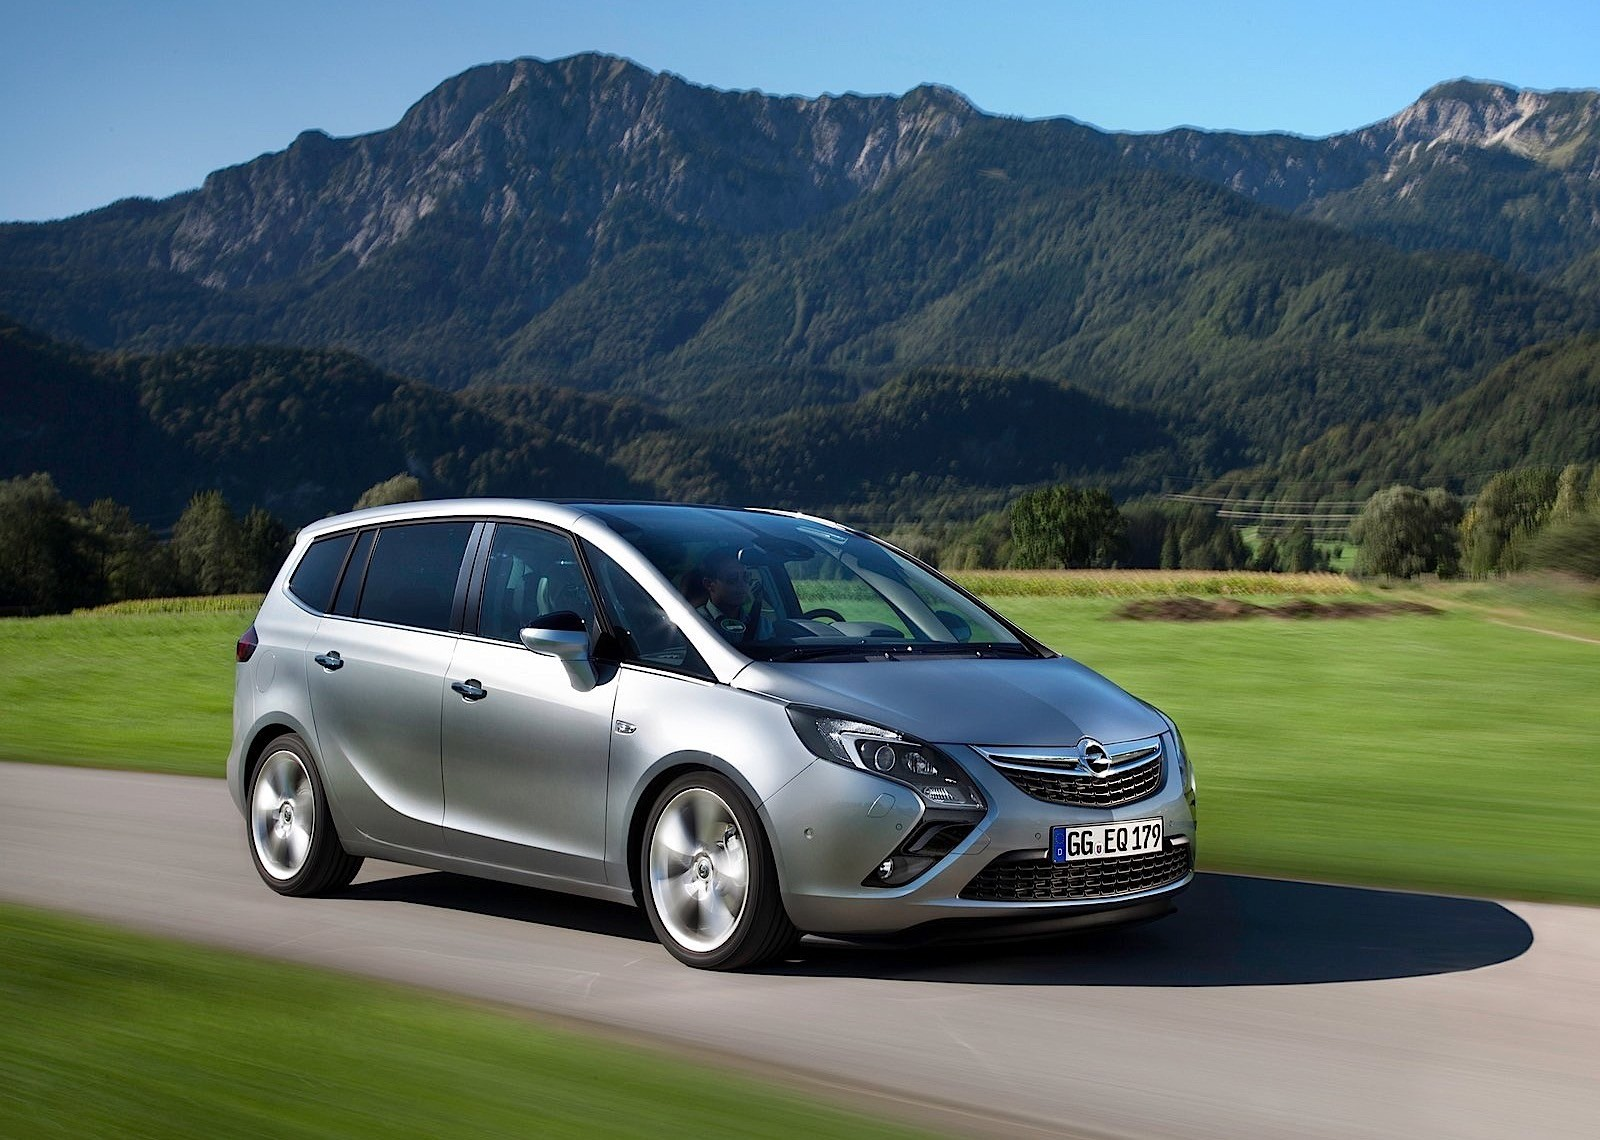 opel zafira tourer specs 2011 2012 2013 2014 2015 2016 autoevolution. Black Bedroom Furniture Sets. Home Design Ideas